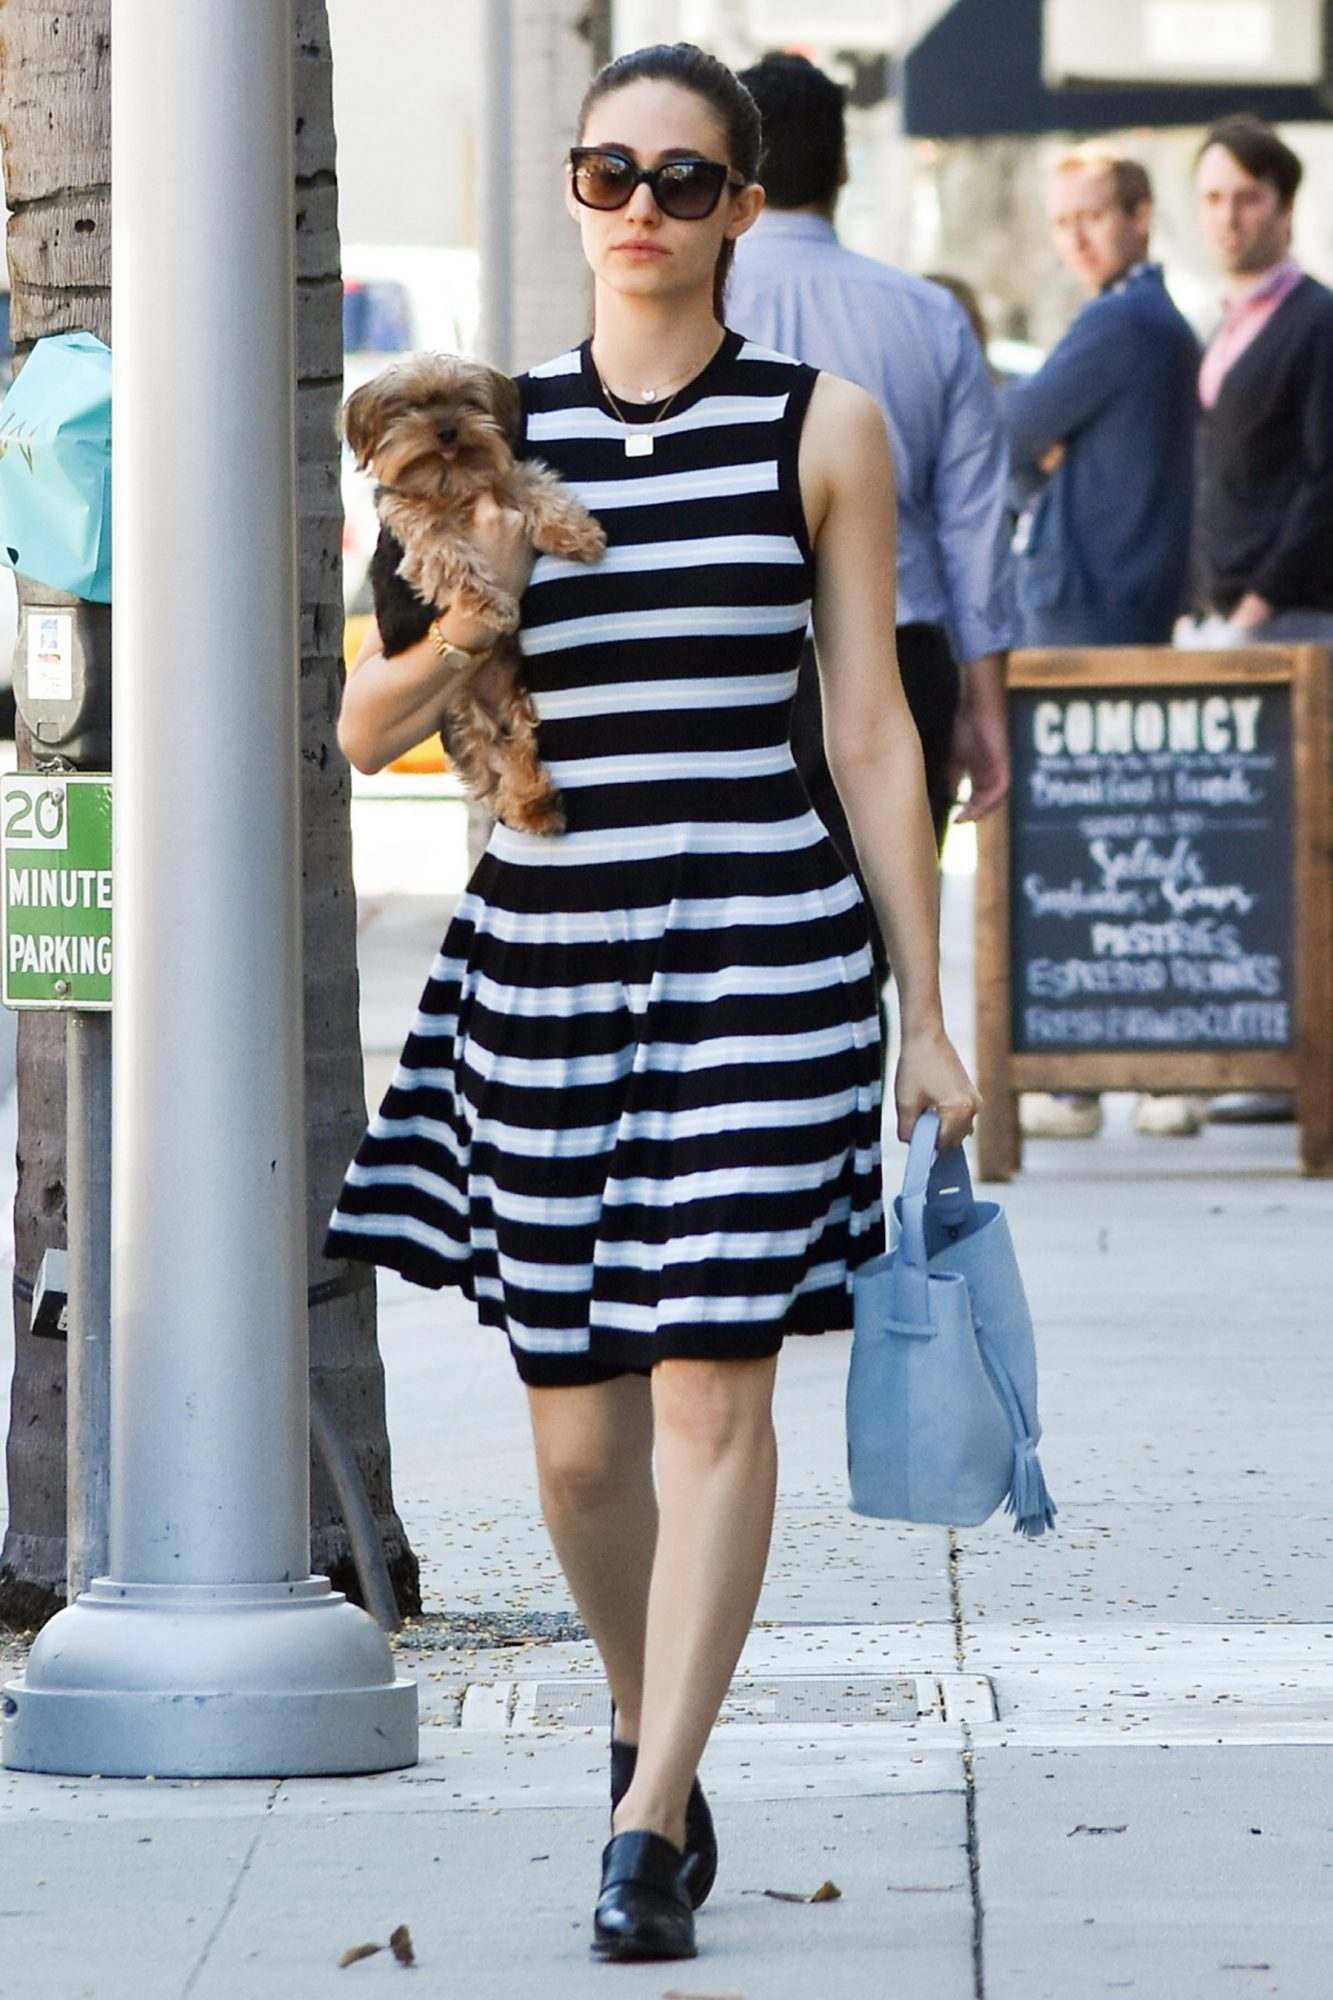 EXCLUSIVE: Emmy Rossum spotted in LA